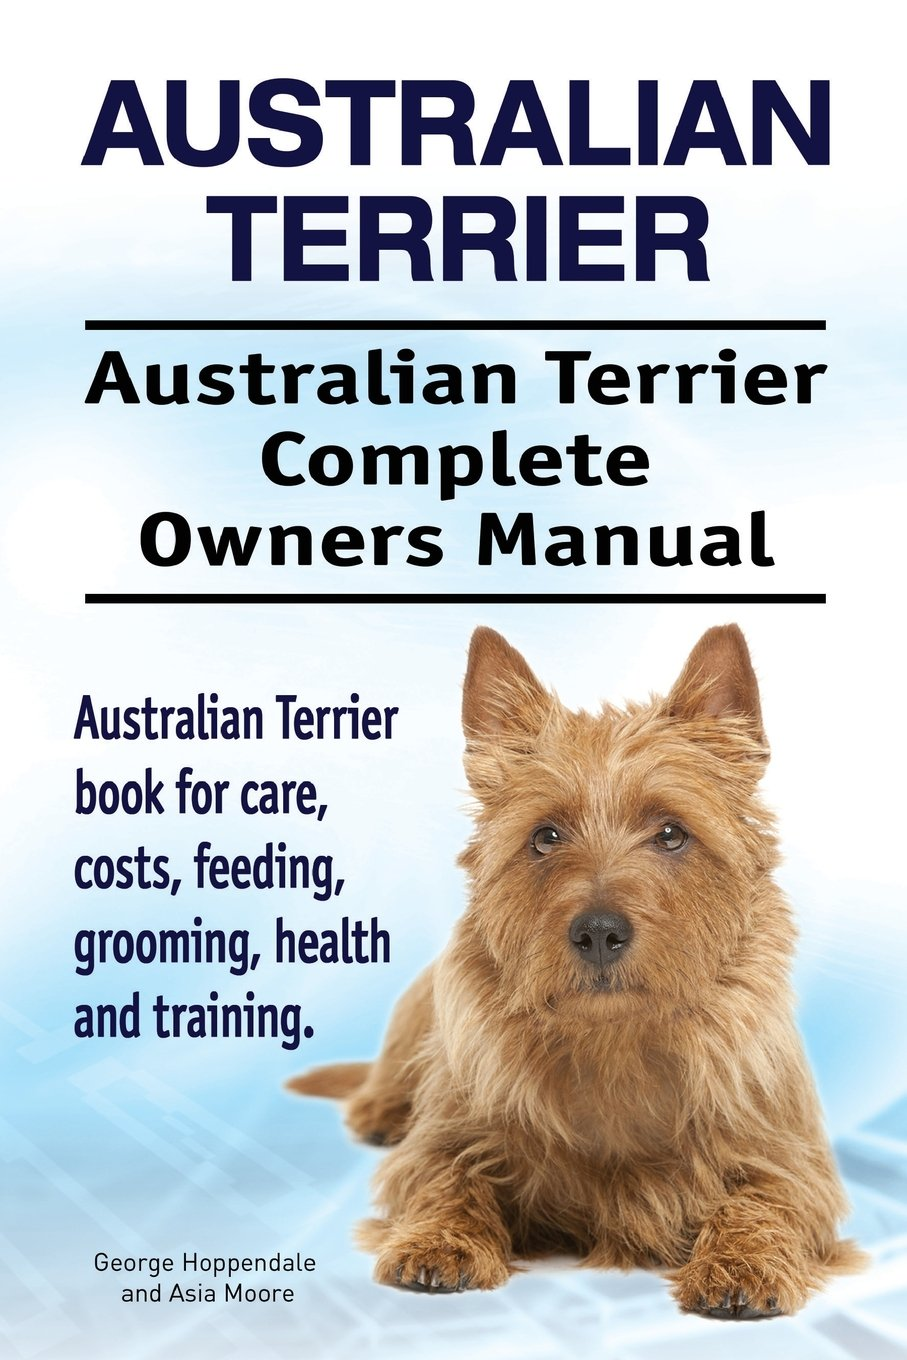 Download Australian Terrier. Australian Terrier Complete Owners Manual. Australian Terrier book for care, costs, feeding, grooming, health and training. PDF